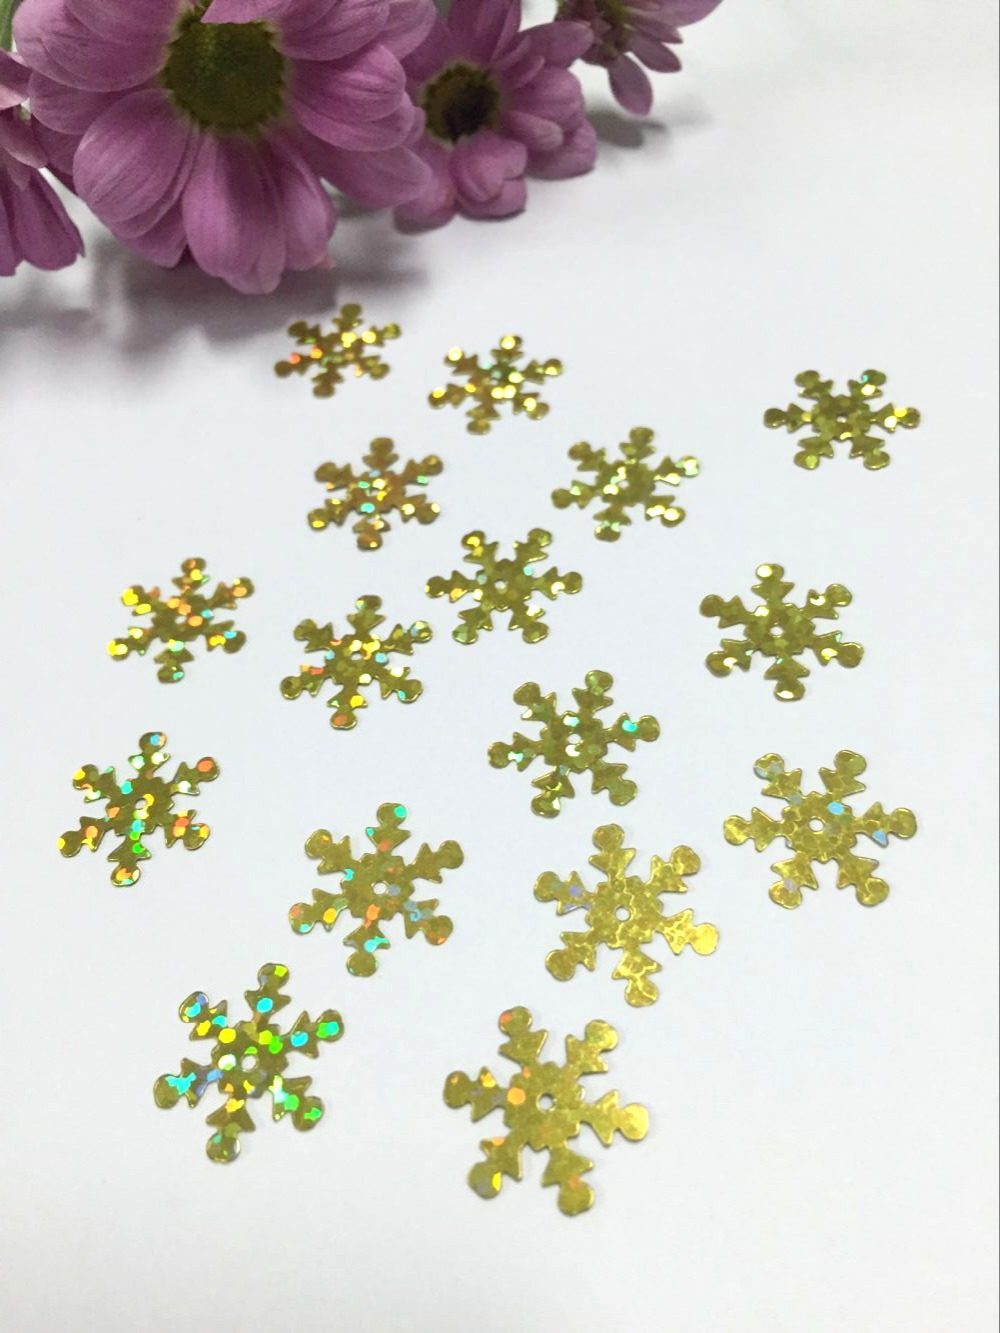 500pcslot 25mm Snowflake PVC Sequins With 1 Center Hole Christmas Gift DIY Clothes Navidad Ornaments Laser Gold Snow